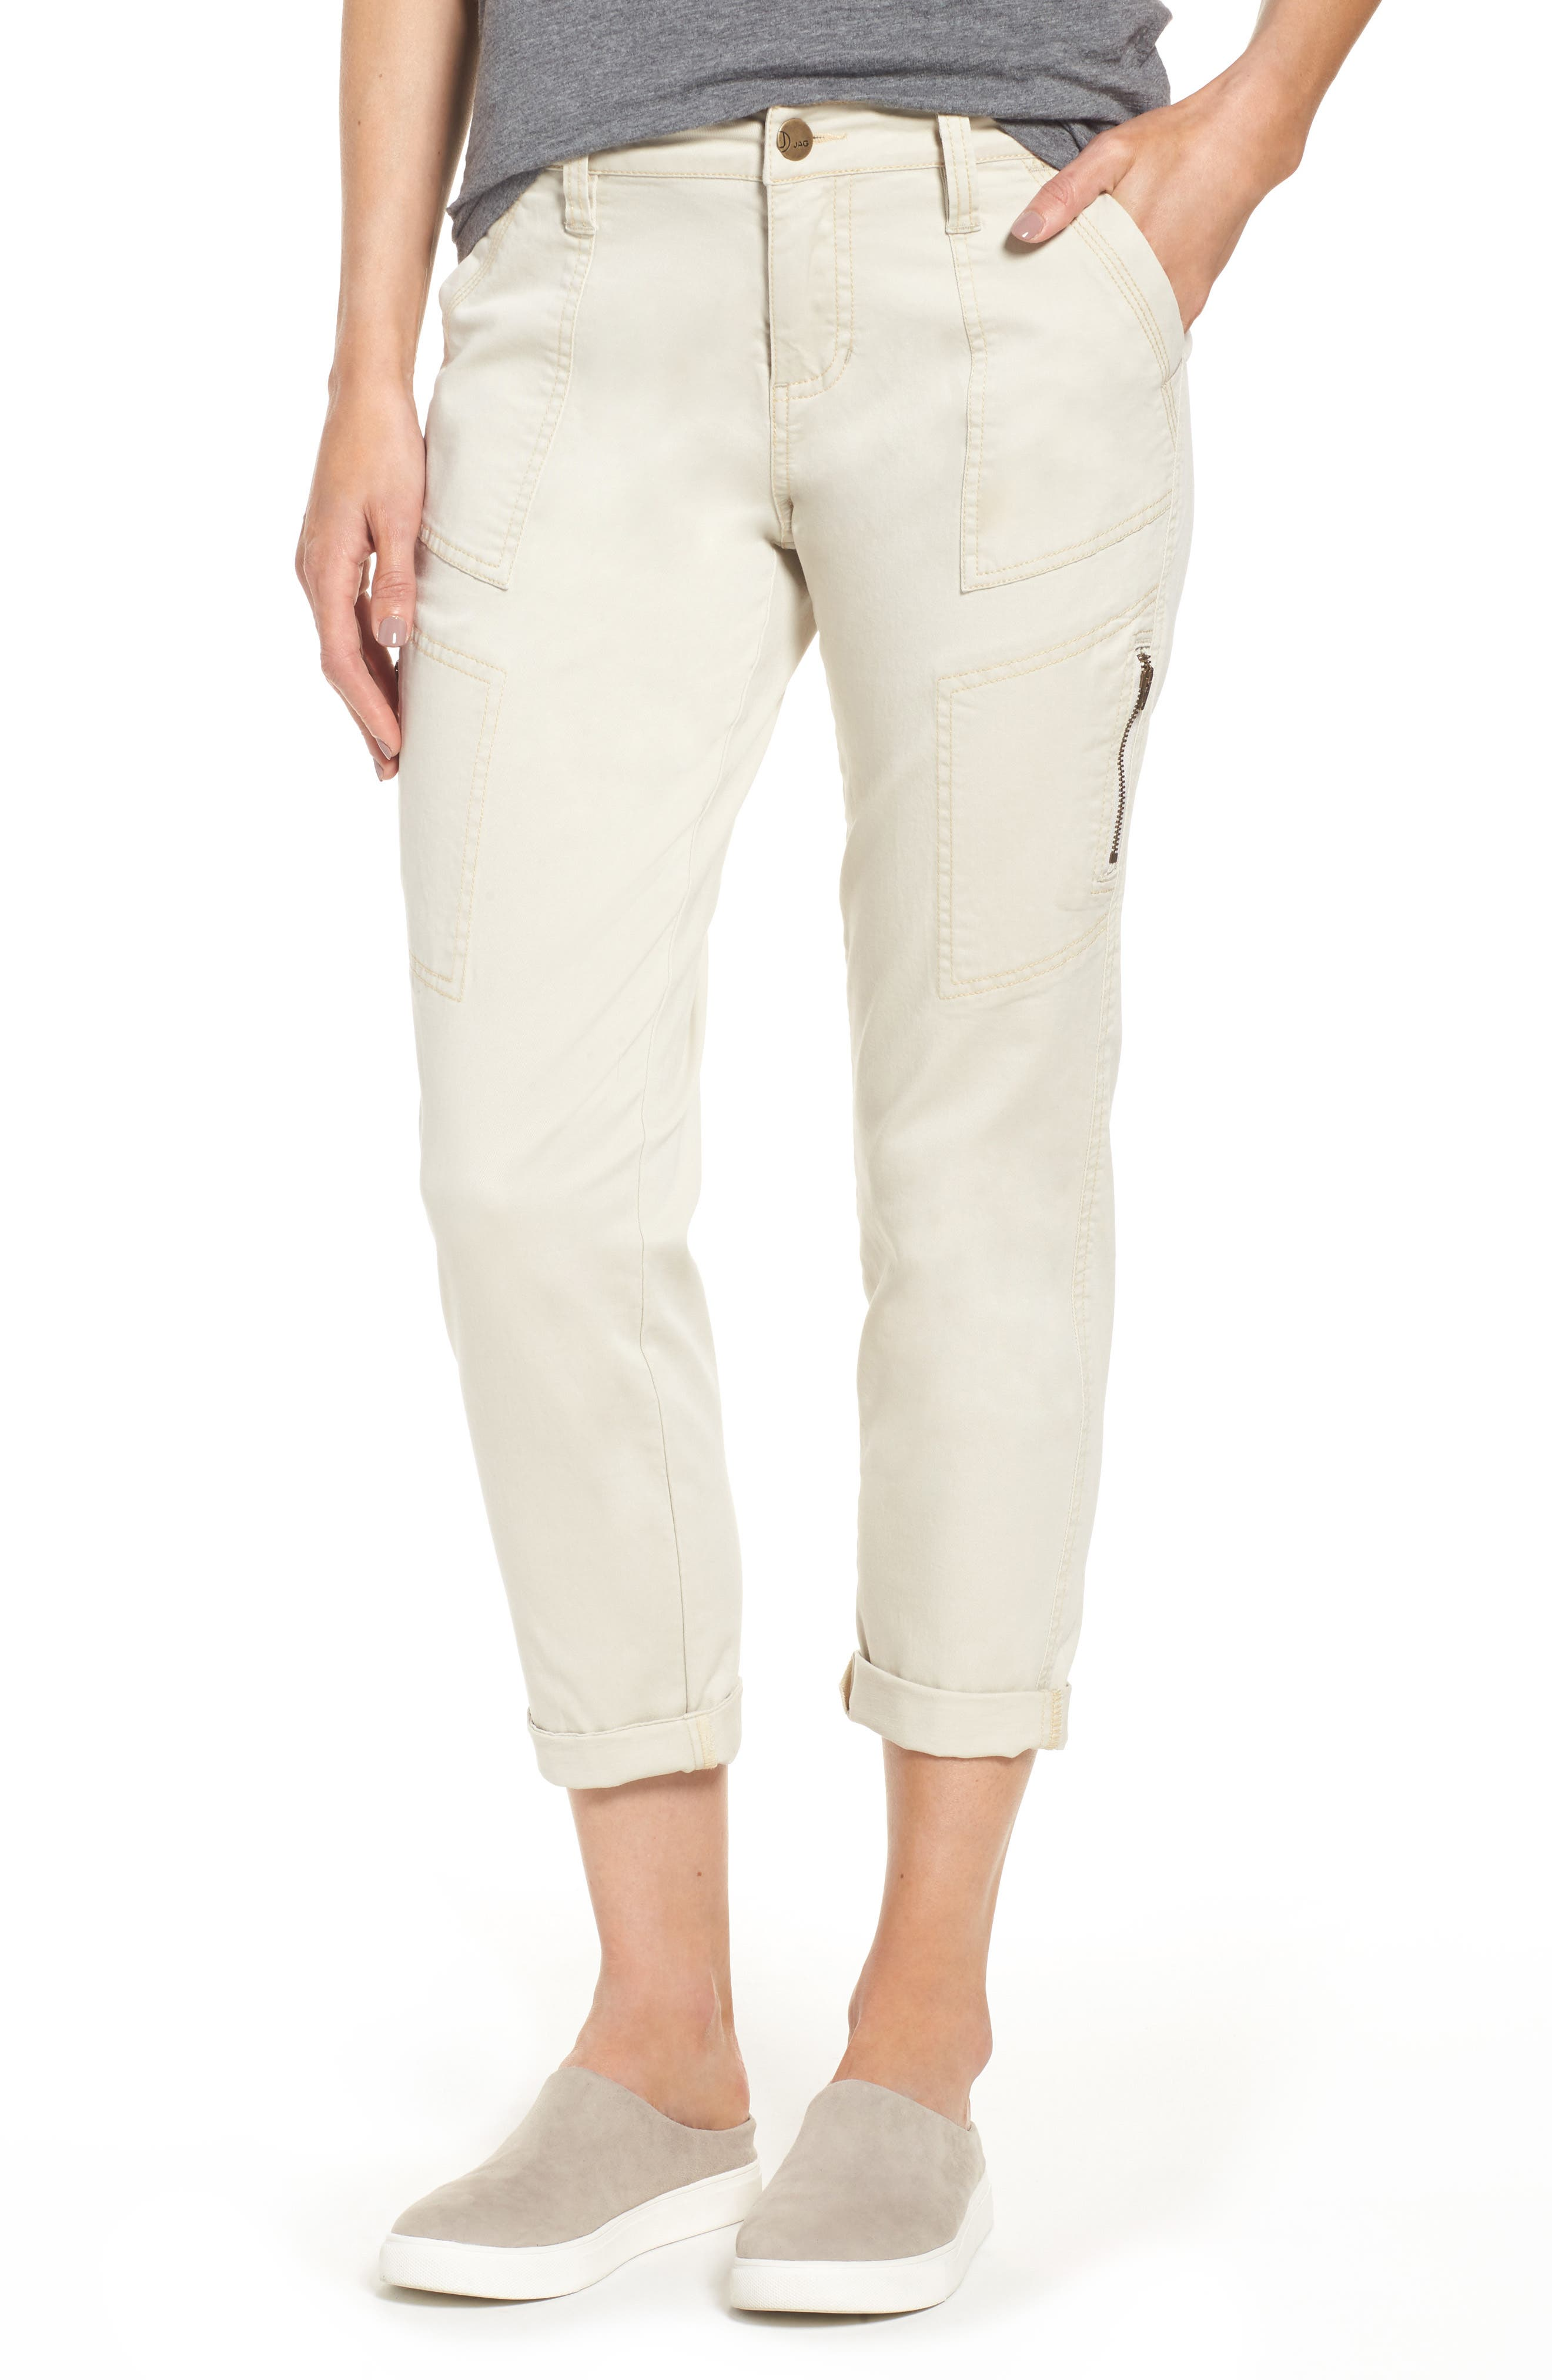 Jag Jeans Gable Stretch Twill Utility Pants